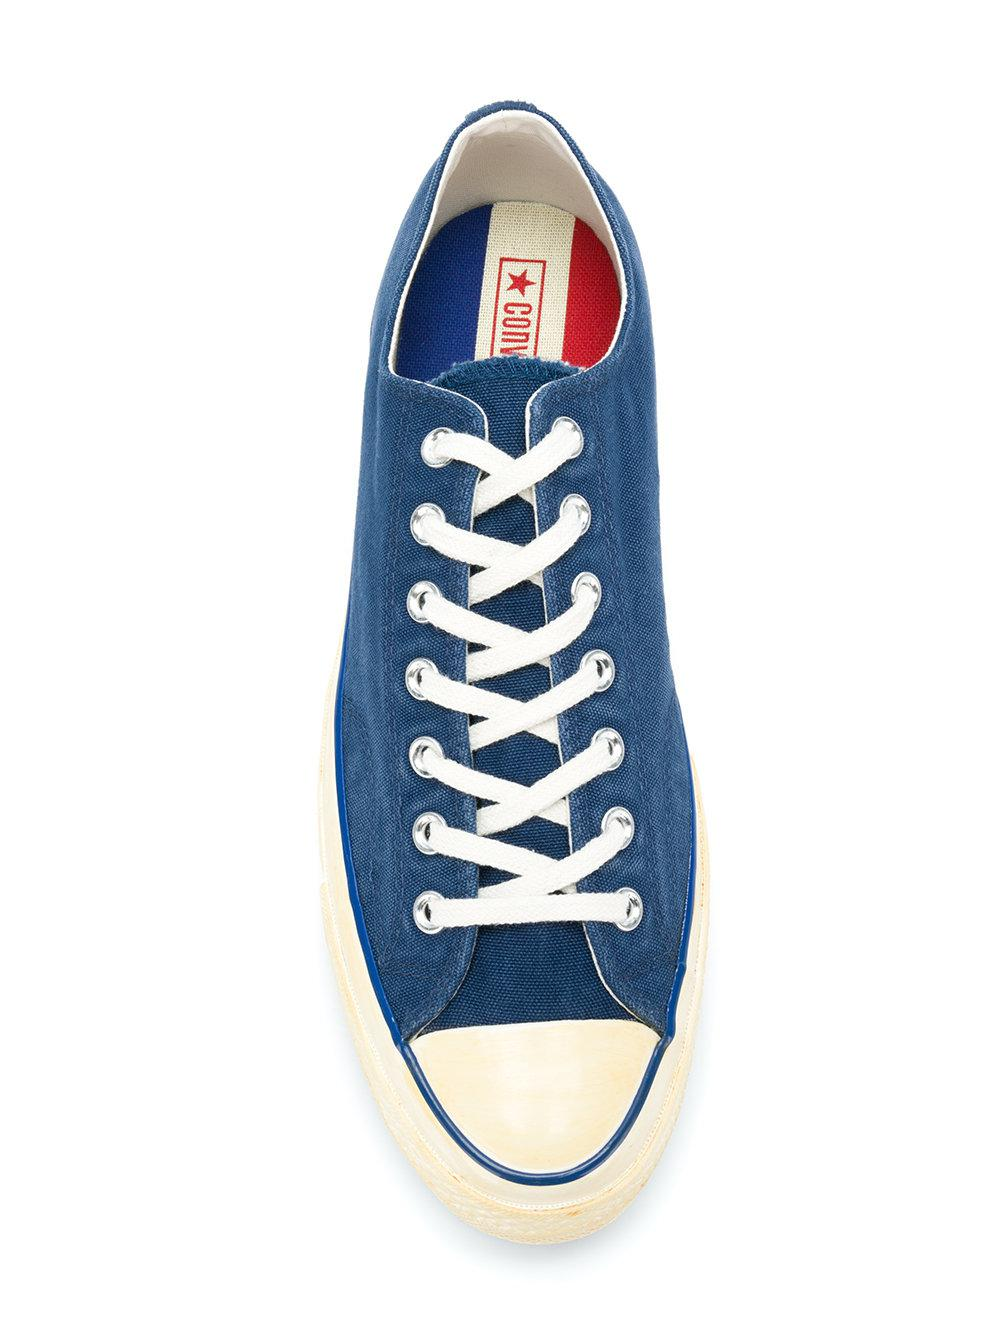 f924ace61f61 Lyst - Converse Classic Lace-up Sneakers in Blue for Men